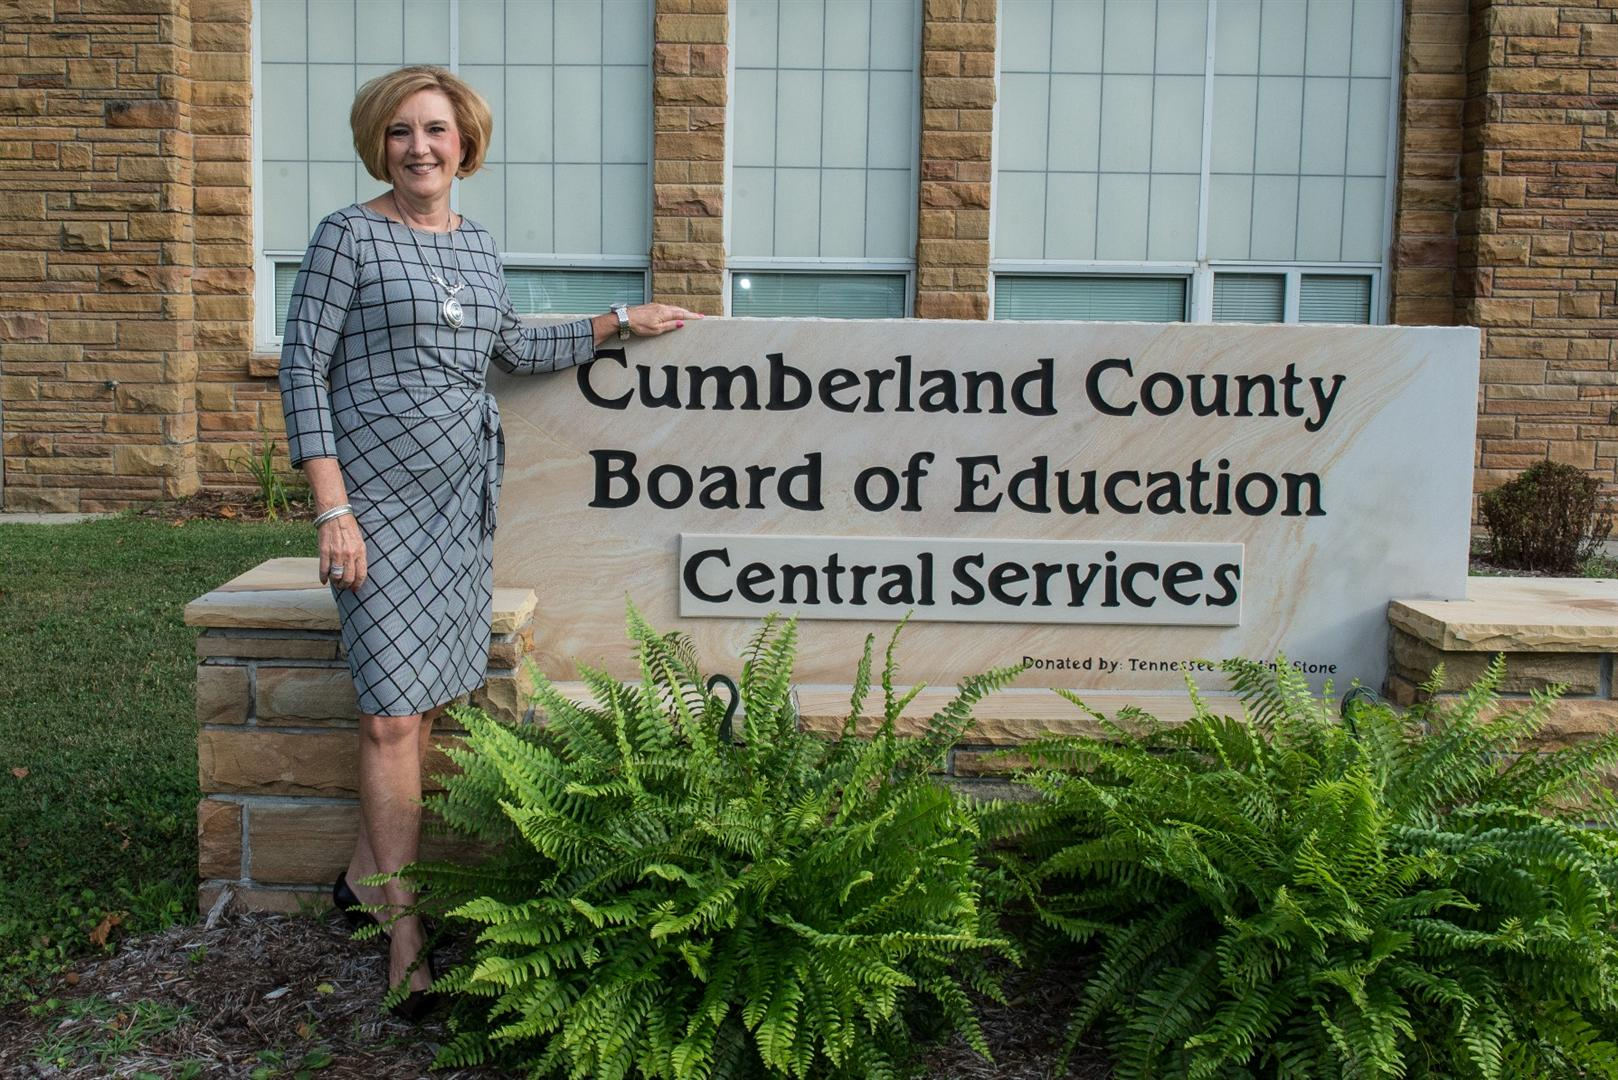 Director of Schools for the Board of Education